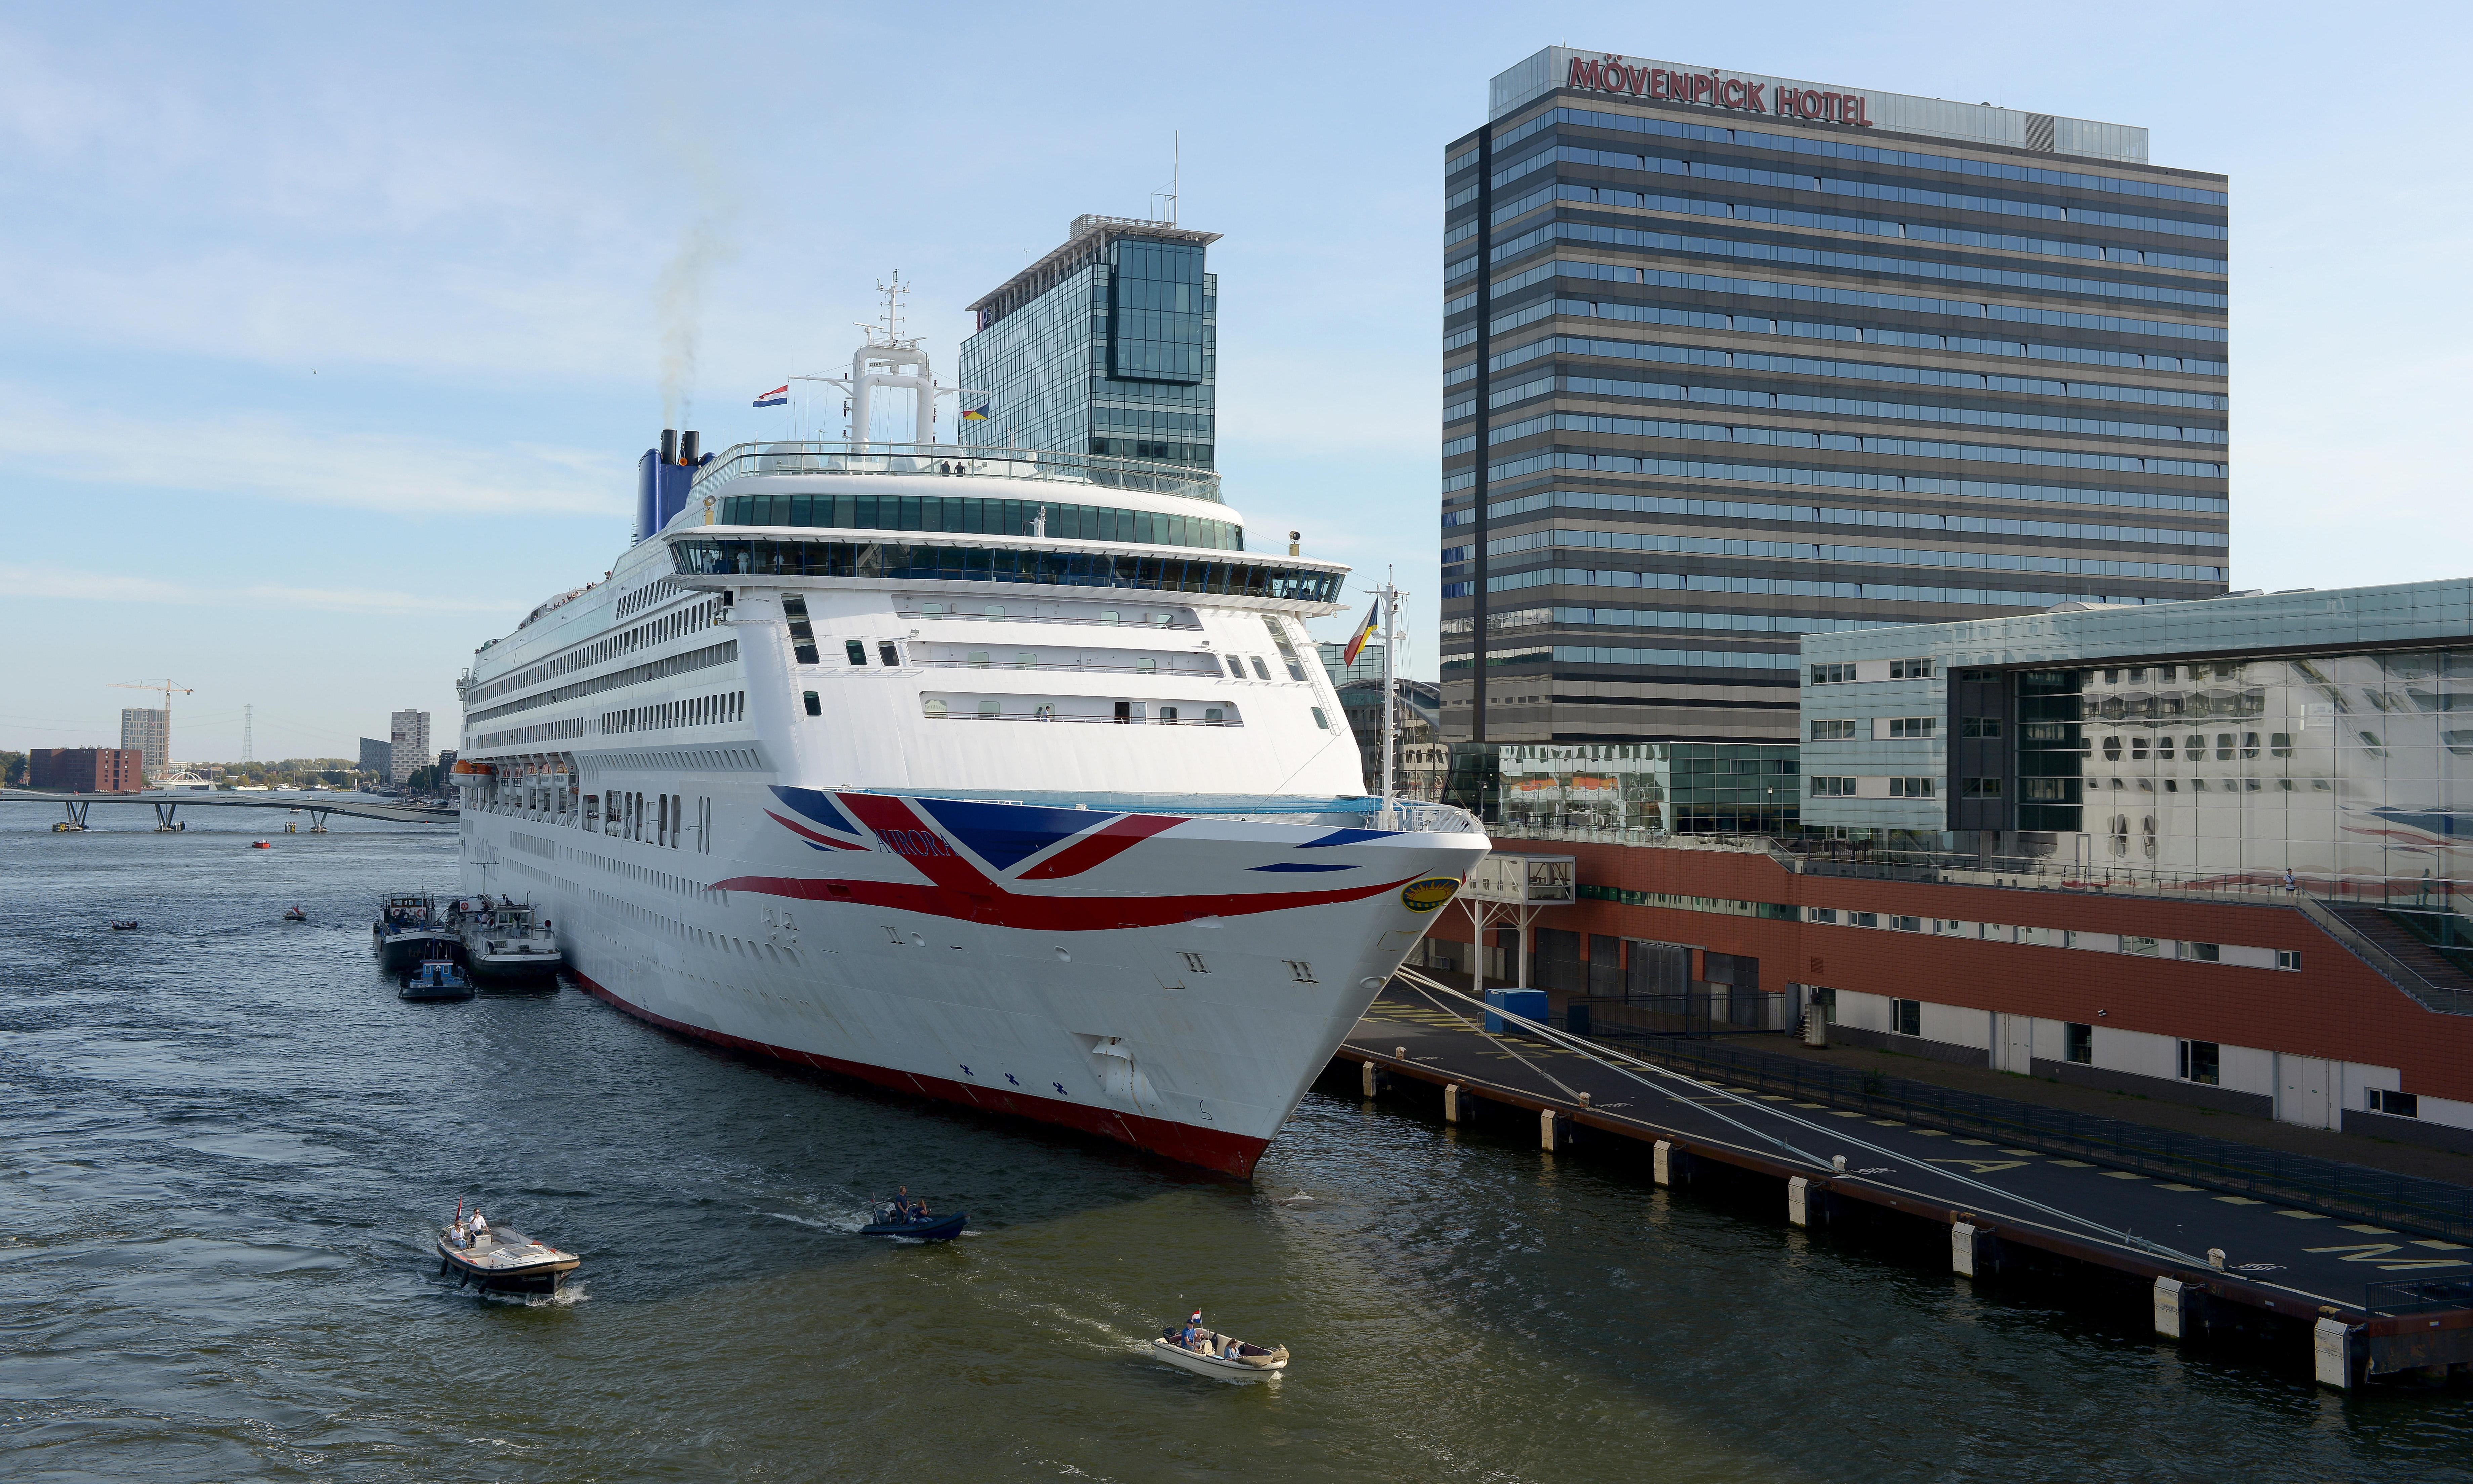 Why did P&O use a shuttle bus on our cruise to Amsterdam?